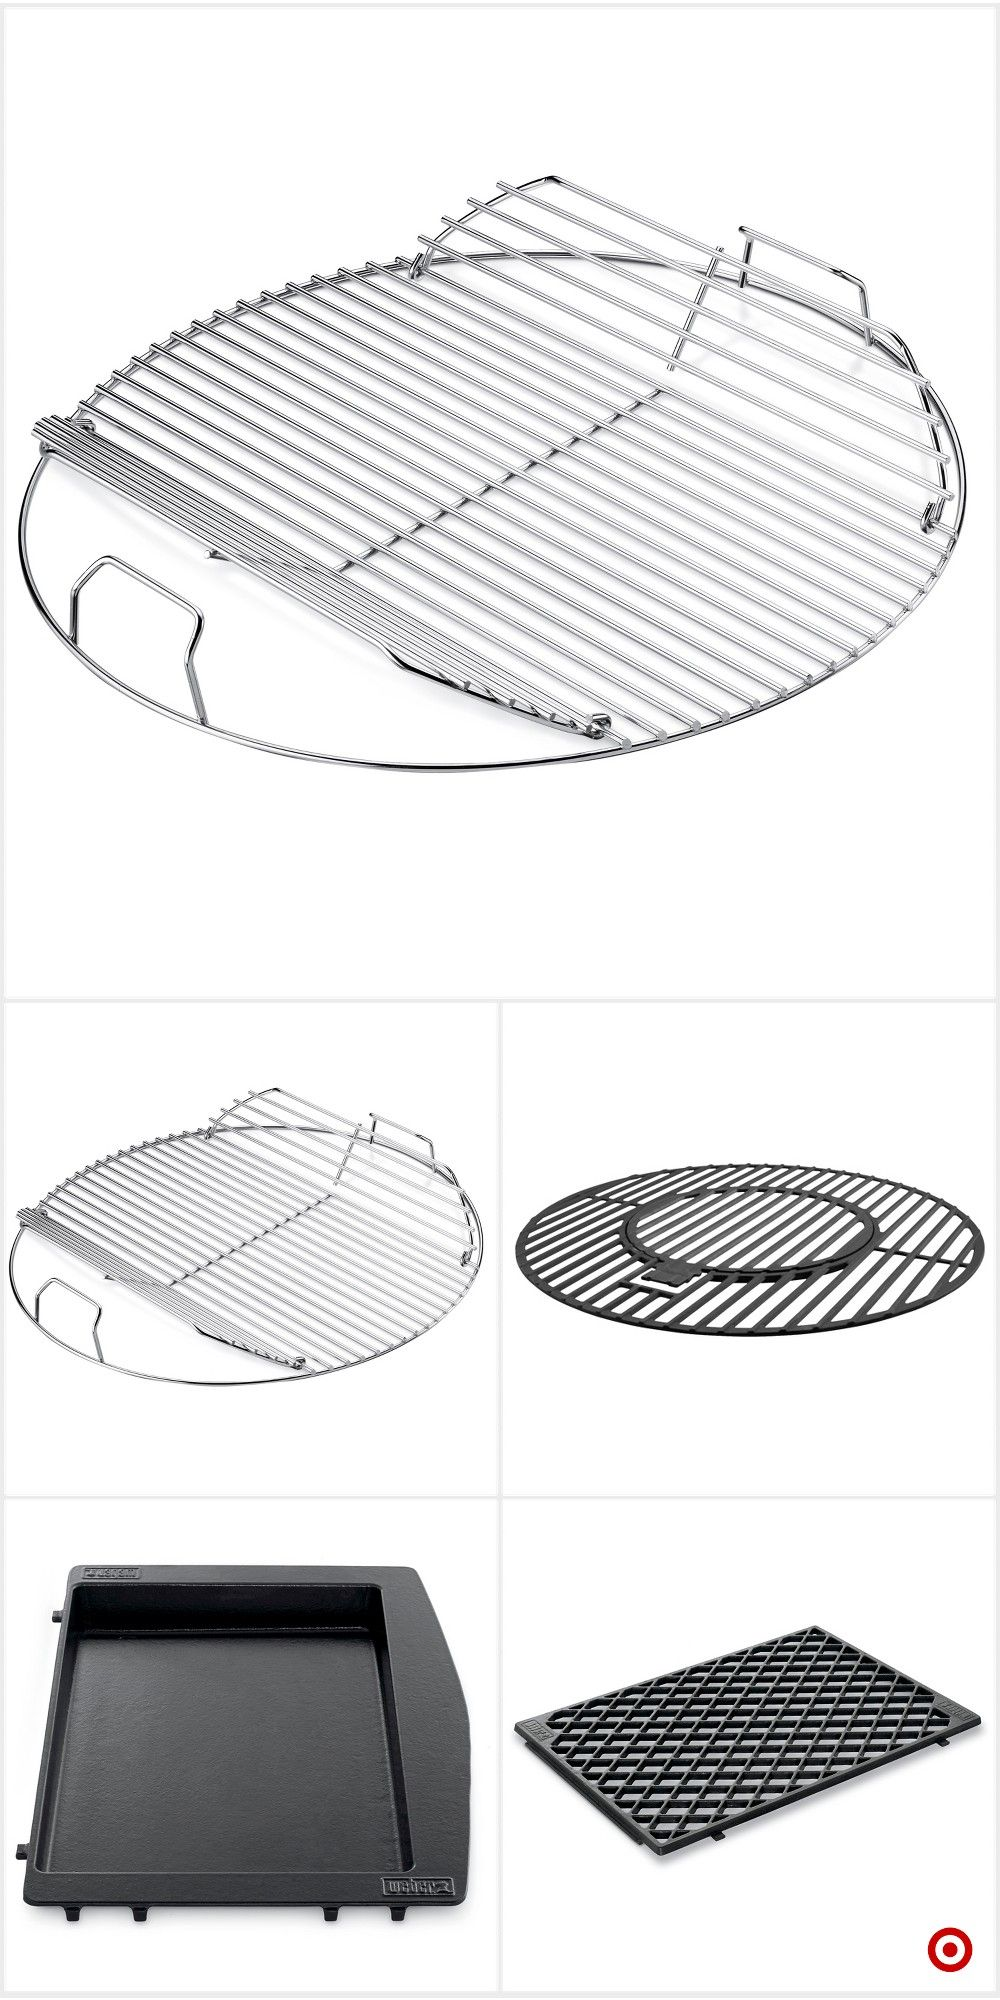 Luggage Rack Target Impressive Shop Target For Grill Grate You Will Love At Great Low Pricesfree Design Ideas